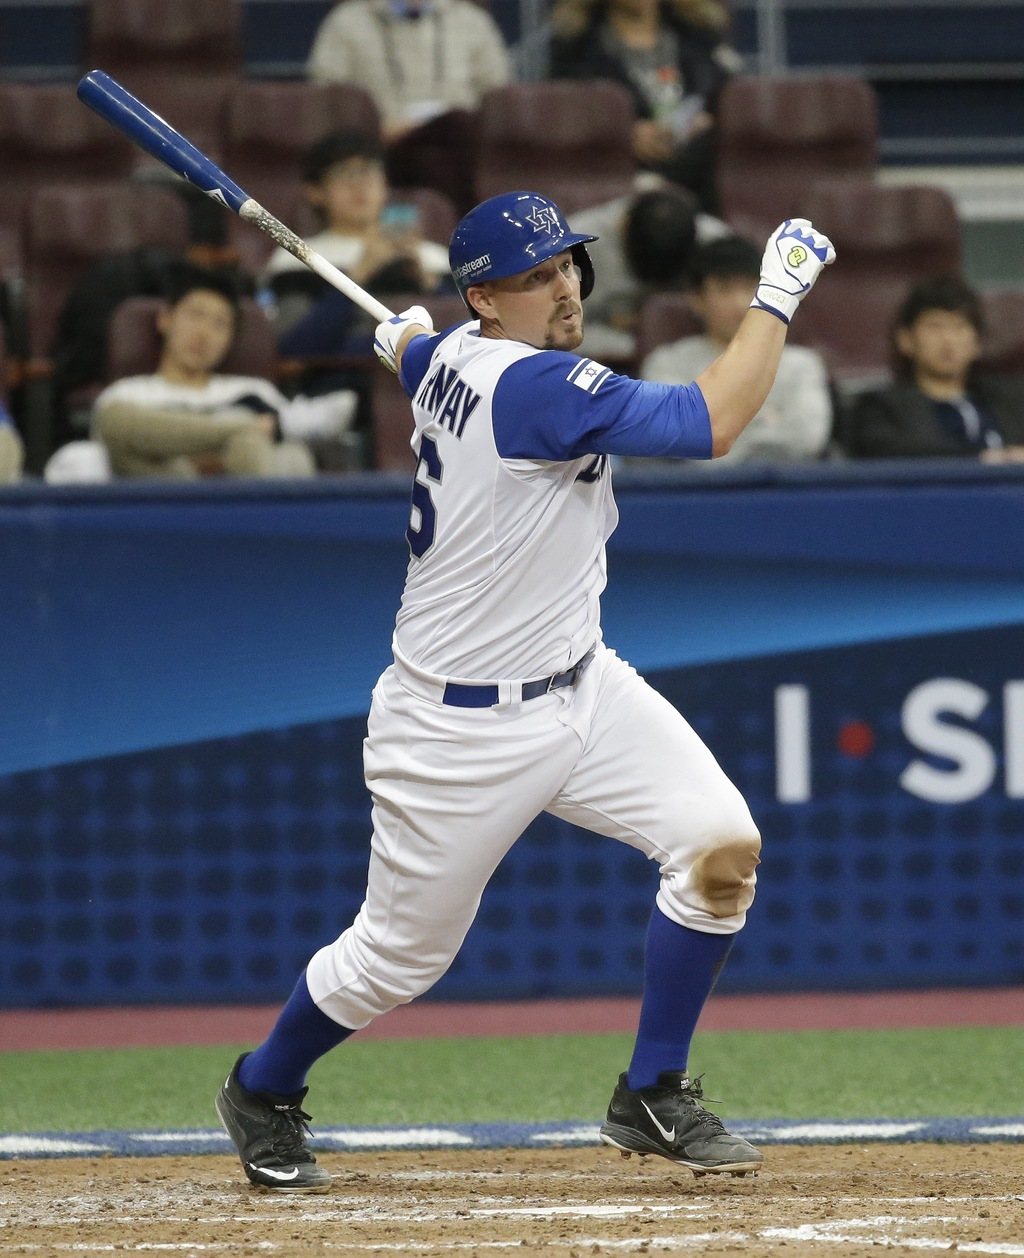 Israel's Ryan Lavarnway hits a single against Netherlands' pitcher Orlando Yntema during the 5th inning of their first round game of th...